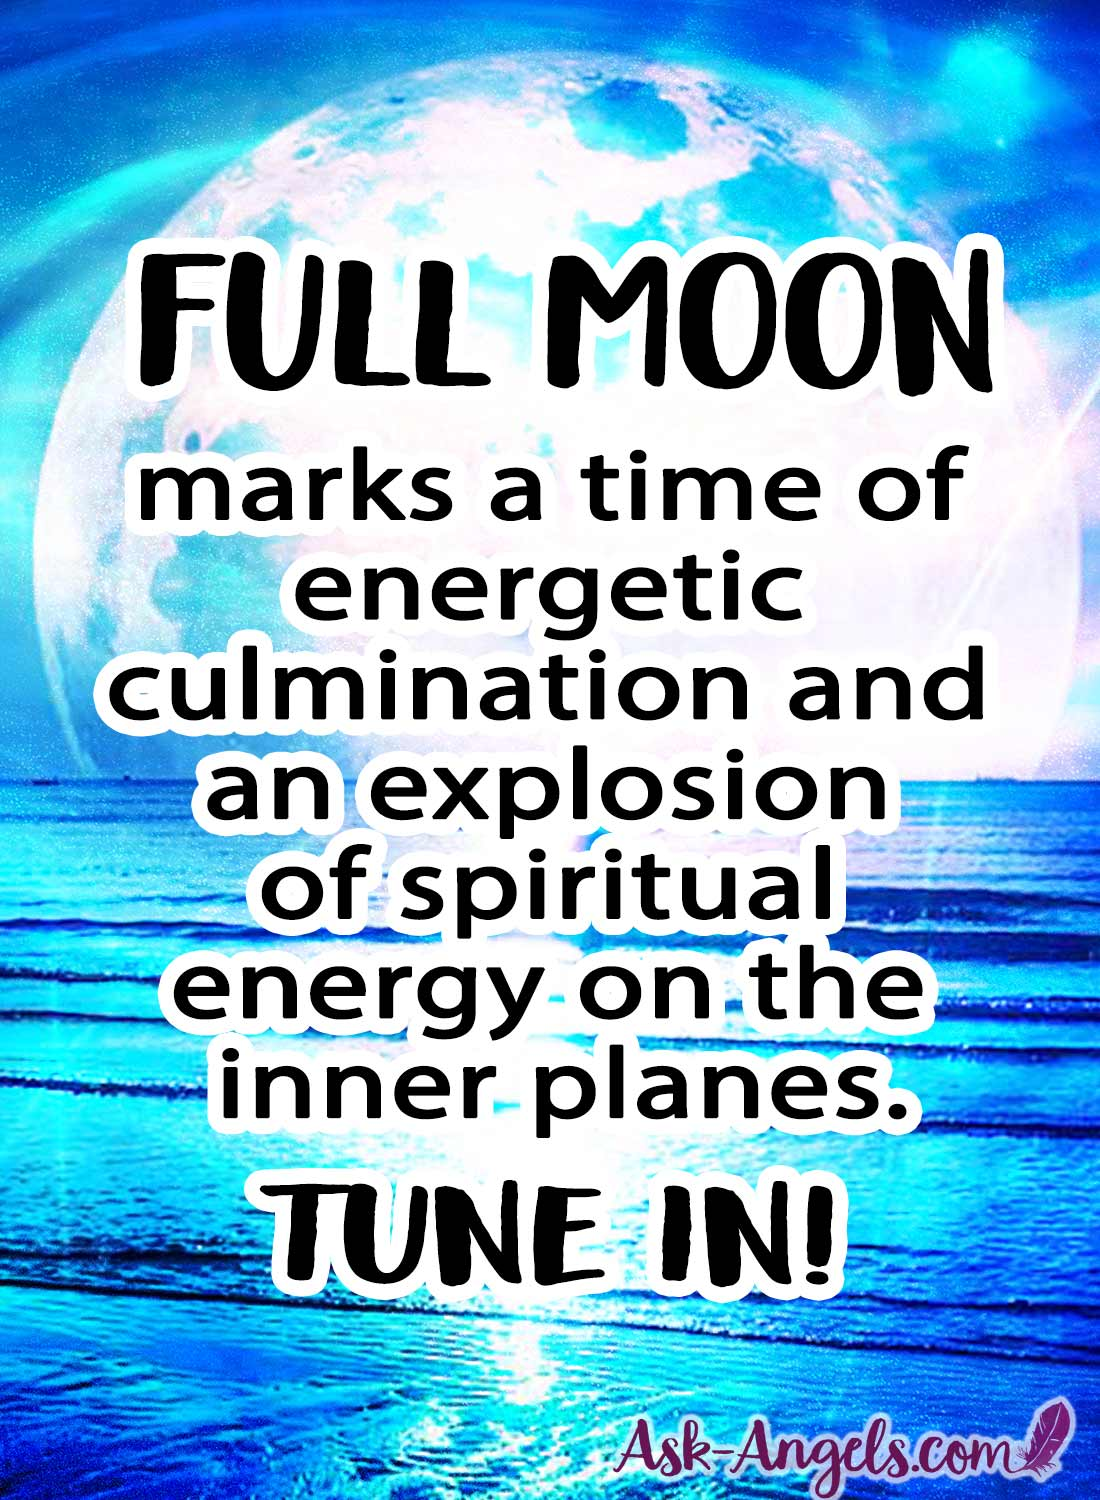 The Full Moon marks a time of energetic culmination and an explosion of spiritual energy on the inner planes.